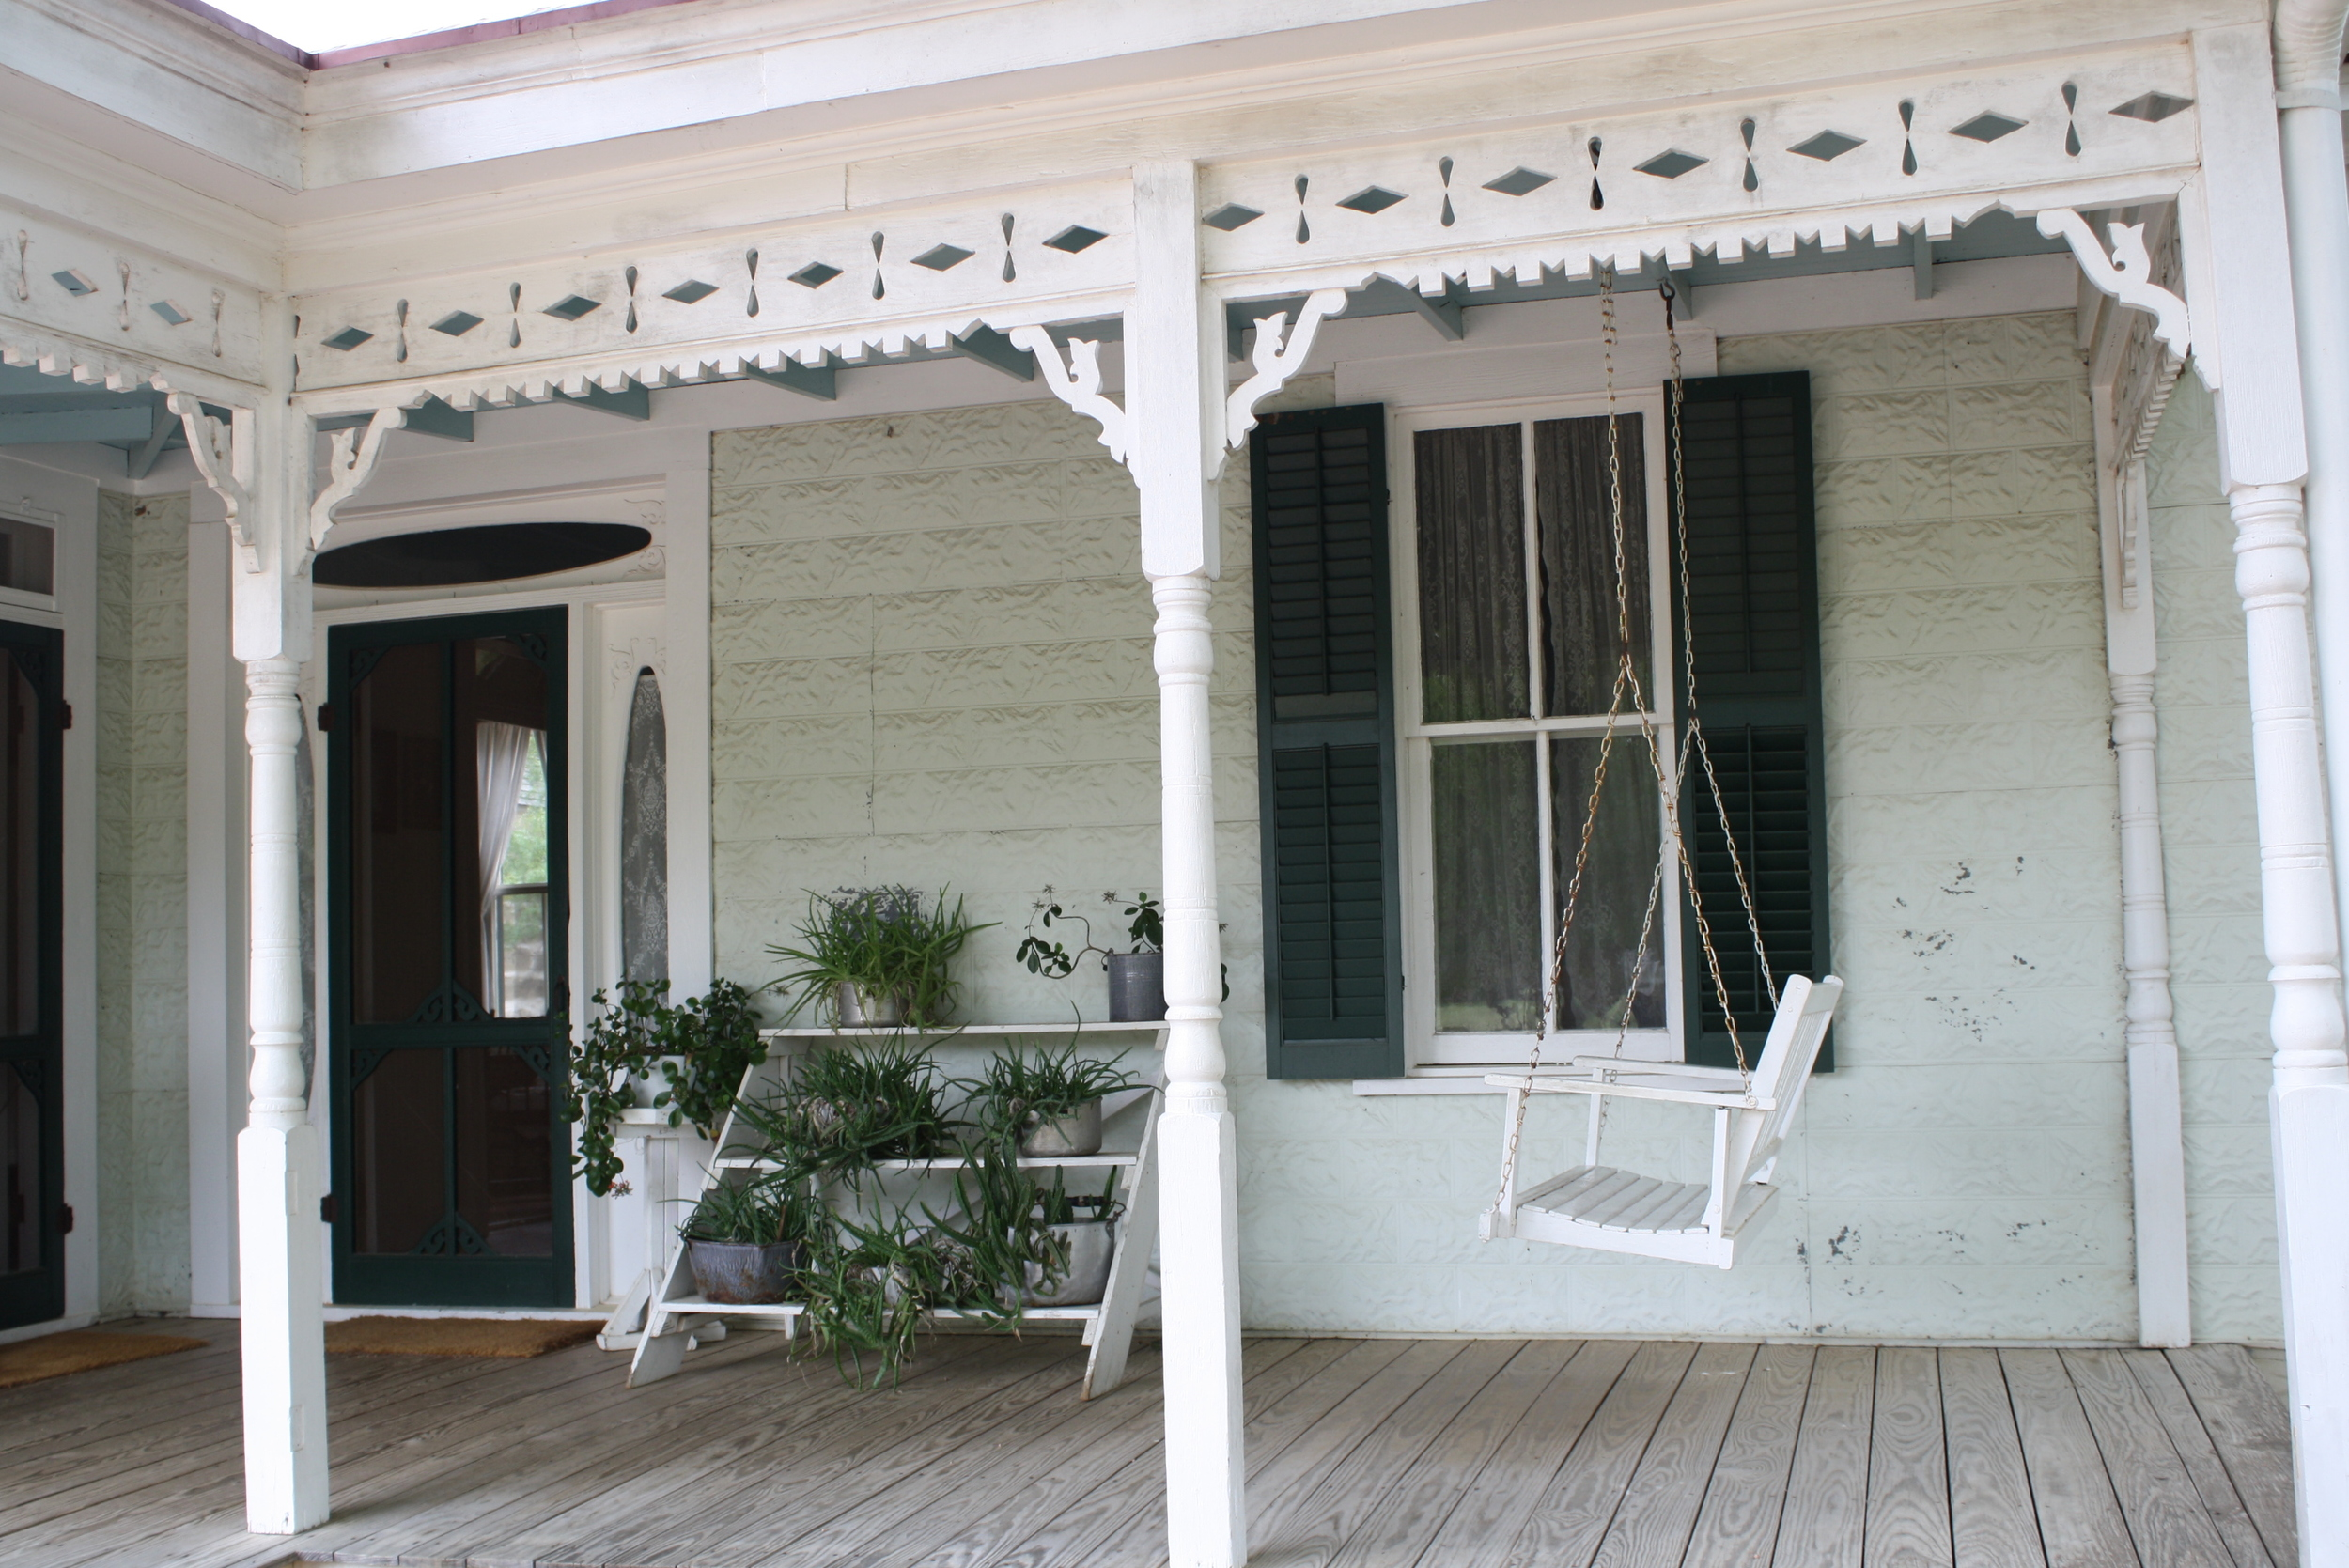 Big front porches were a must back in the day